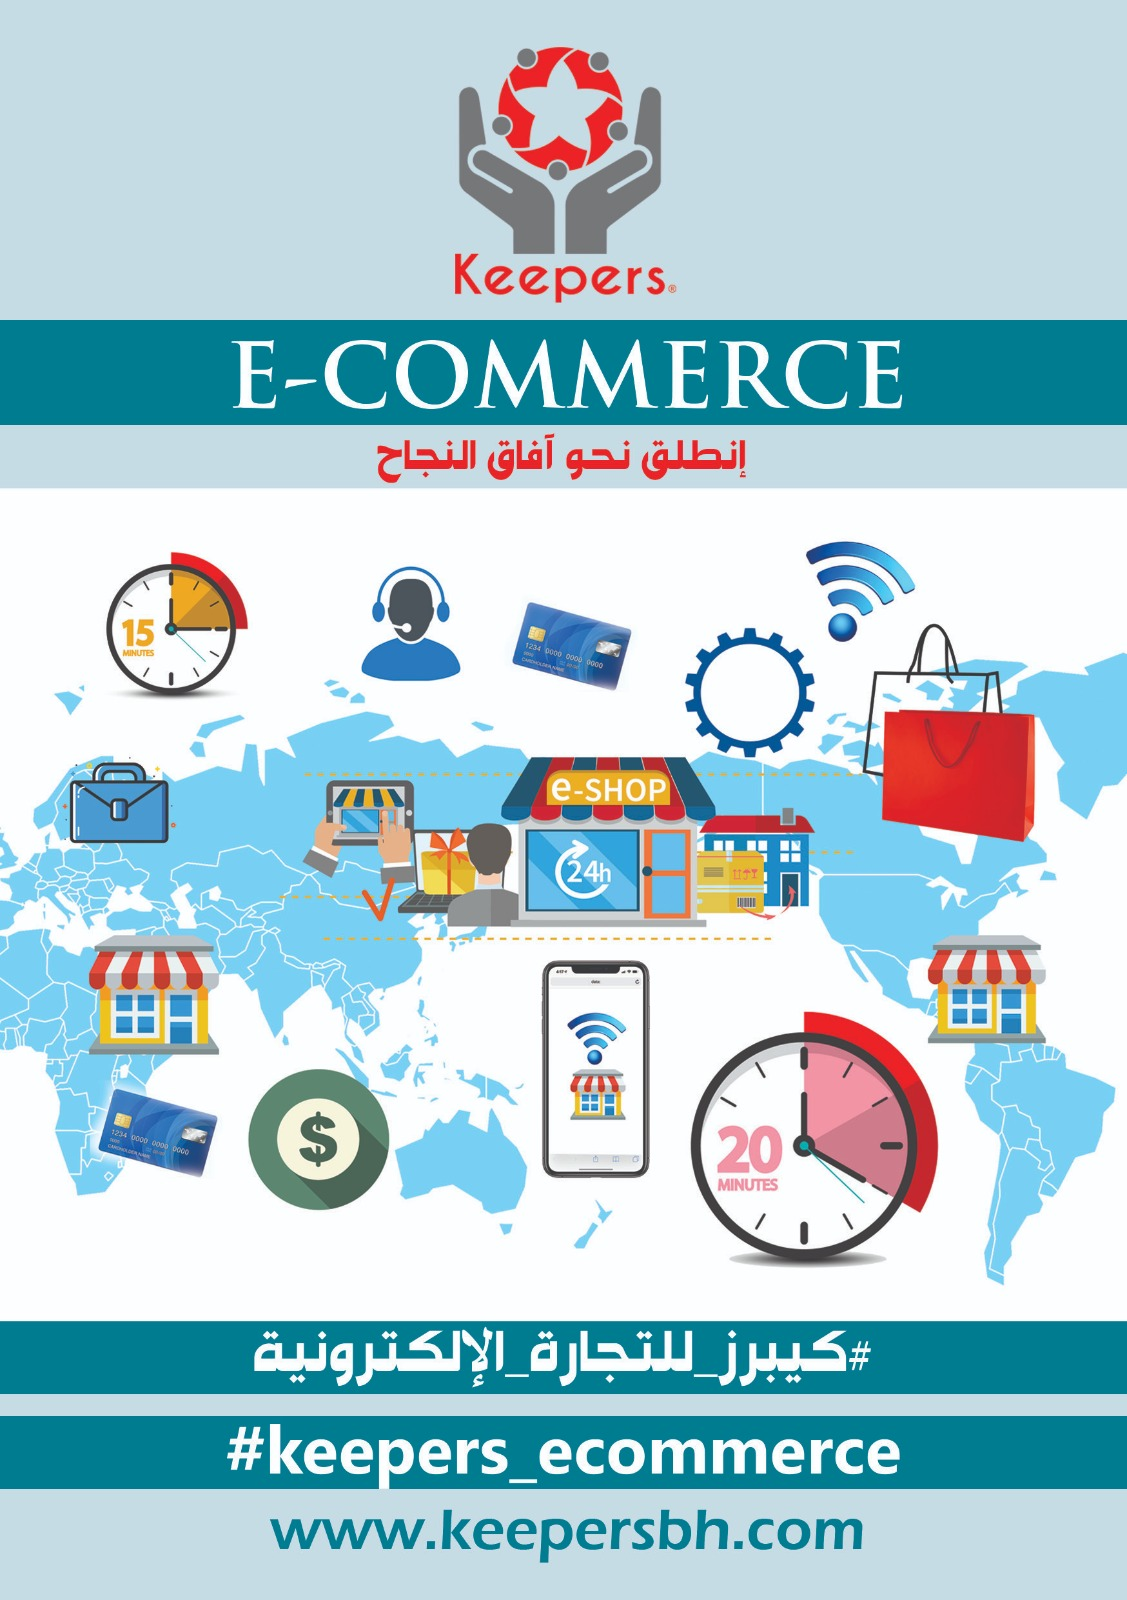 Keepers E-Commerce